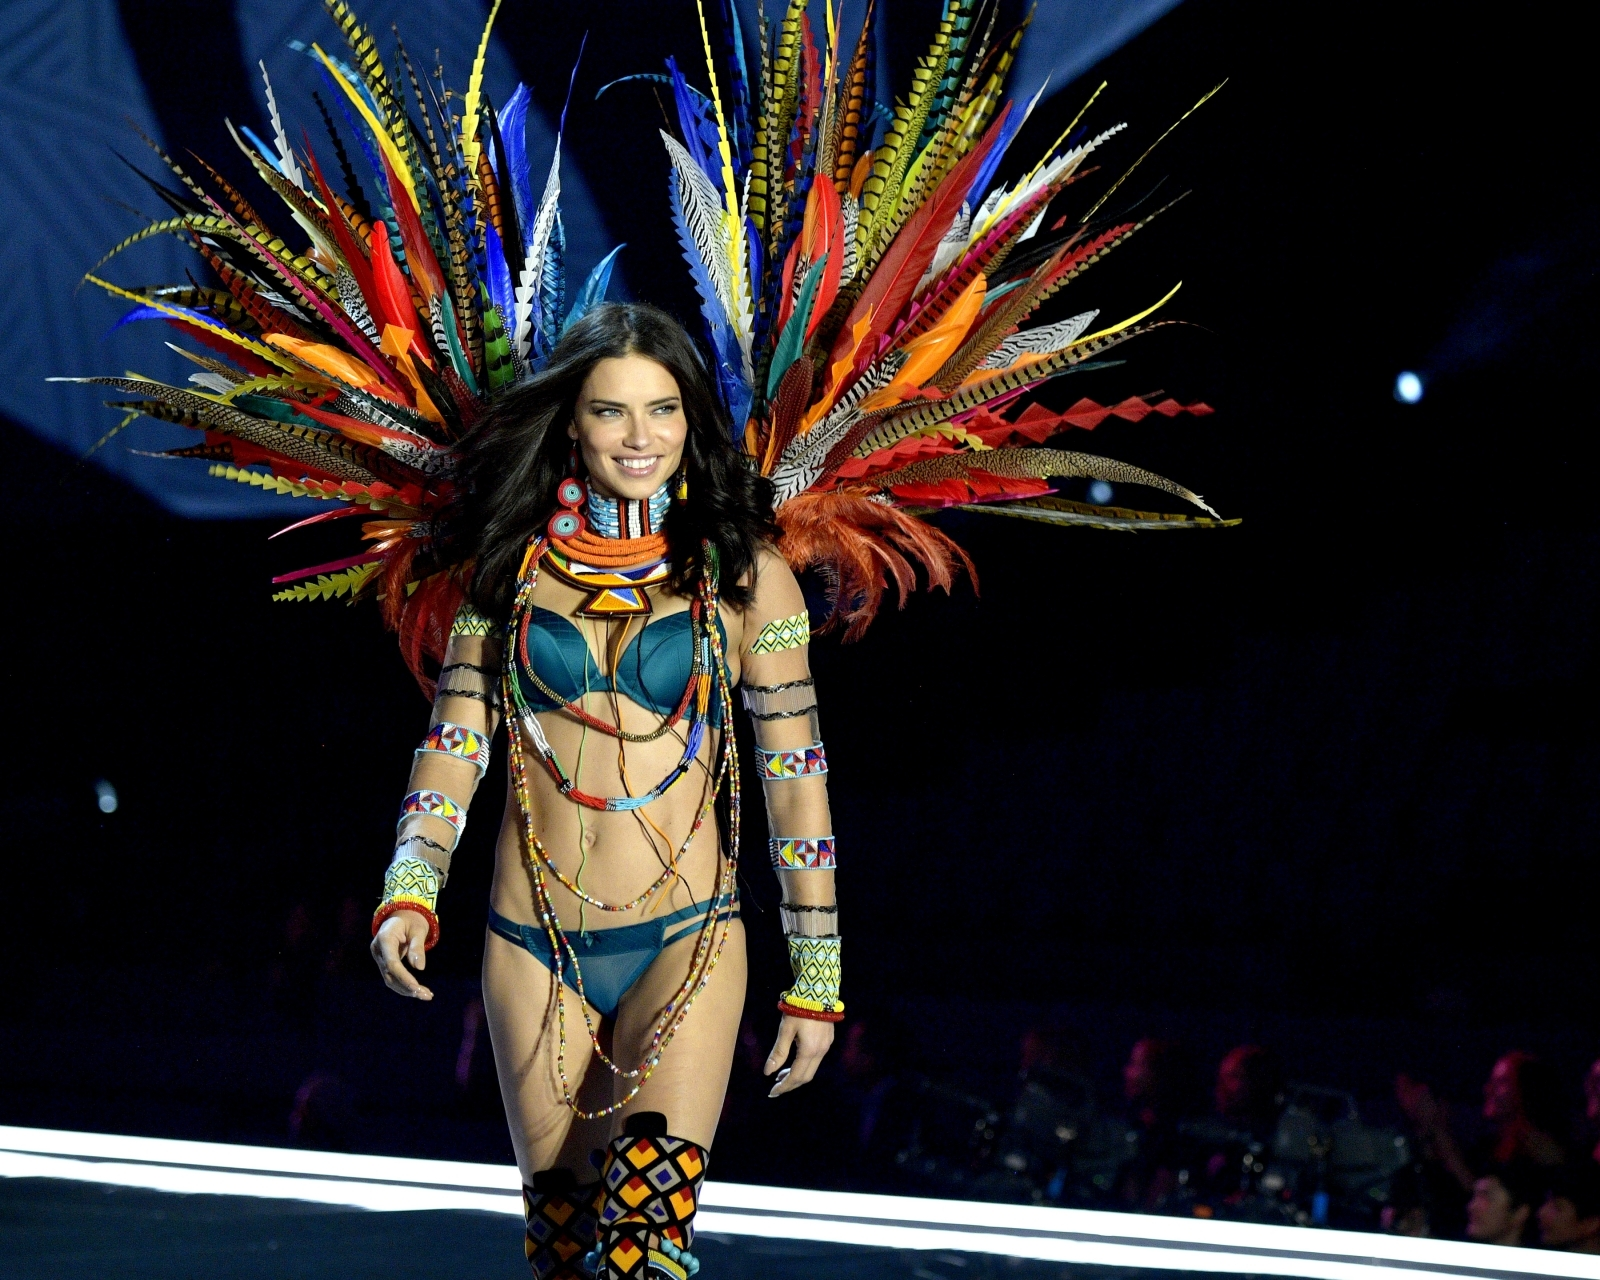 Adriana Lima Gets Lost in Translation ... I'm Not Quitting Victoria's Secret!